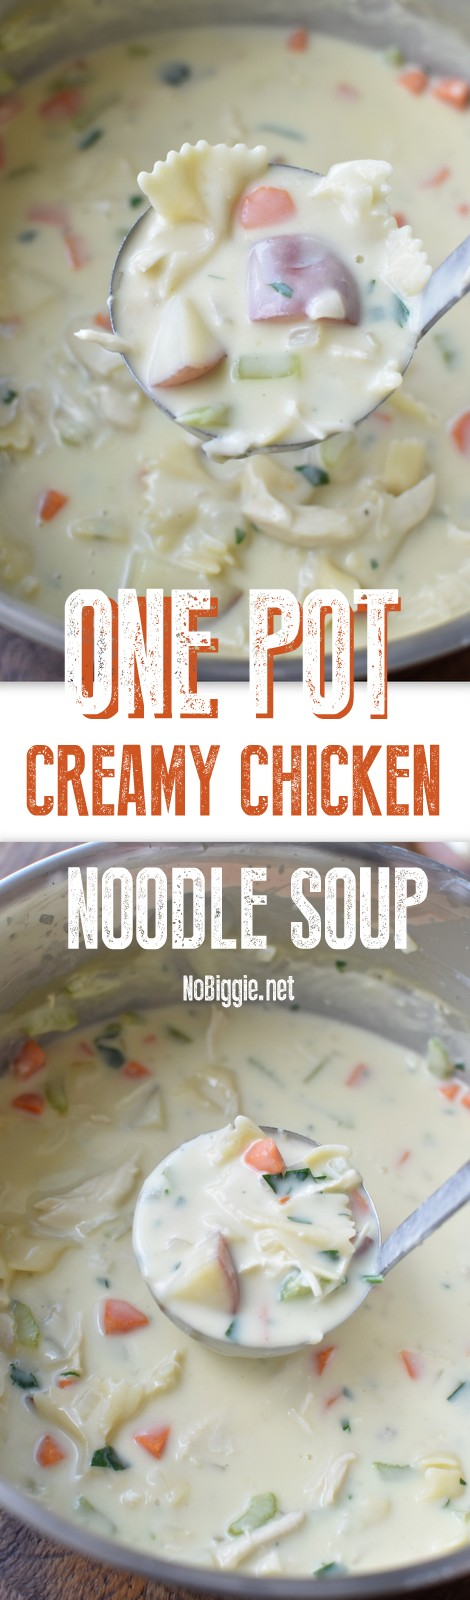 One Pot Creamy Chicken Noodle Soup - We are big fans of a one pot meal the whole family will love, and this one pot creamy chicken noodle soup is just that. #onepotmeals #chickensoup #chickennoodlesoup #creamychickensoup #souprecipes #soup